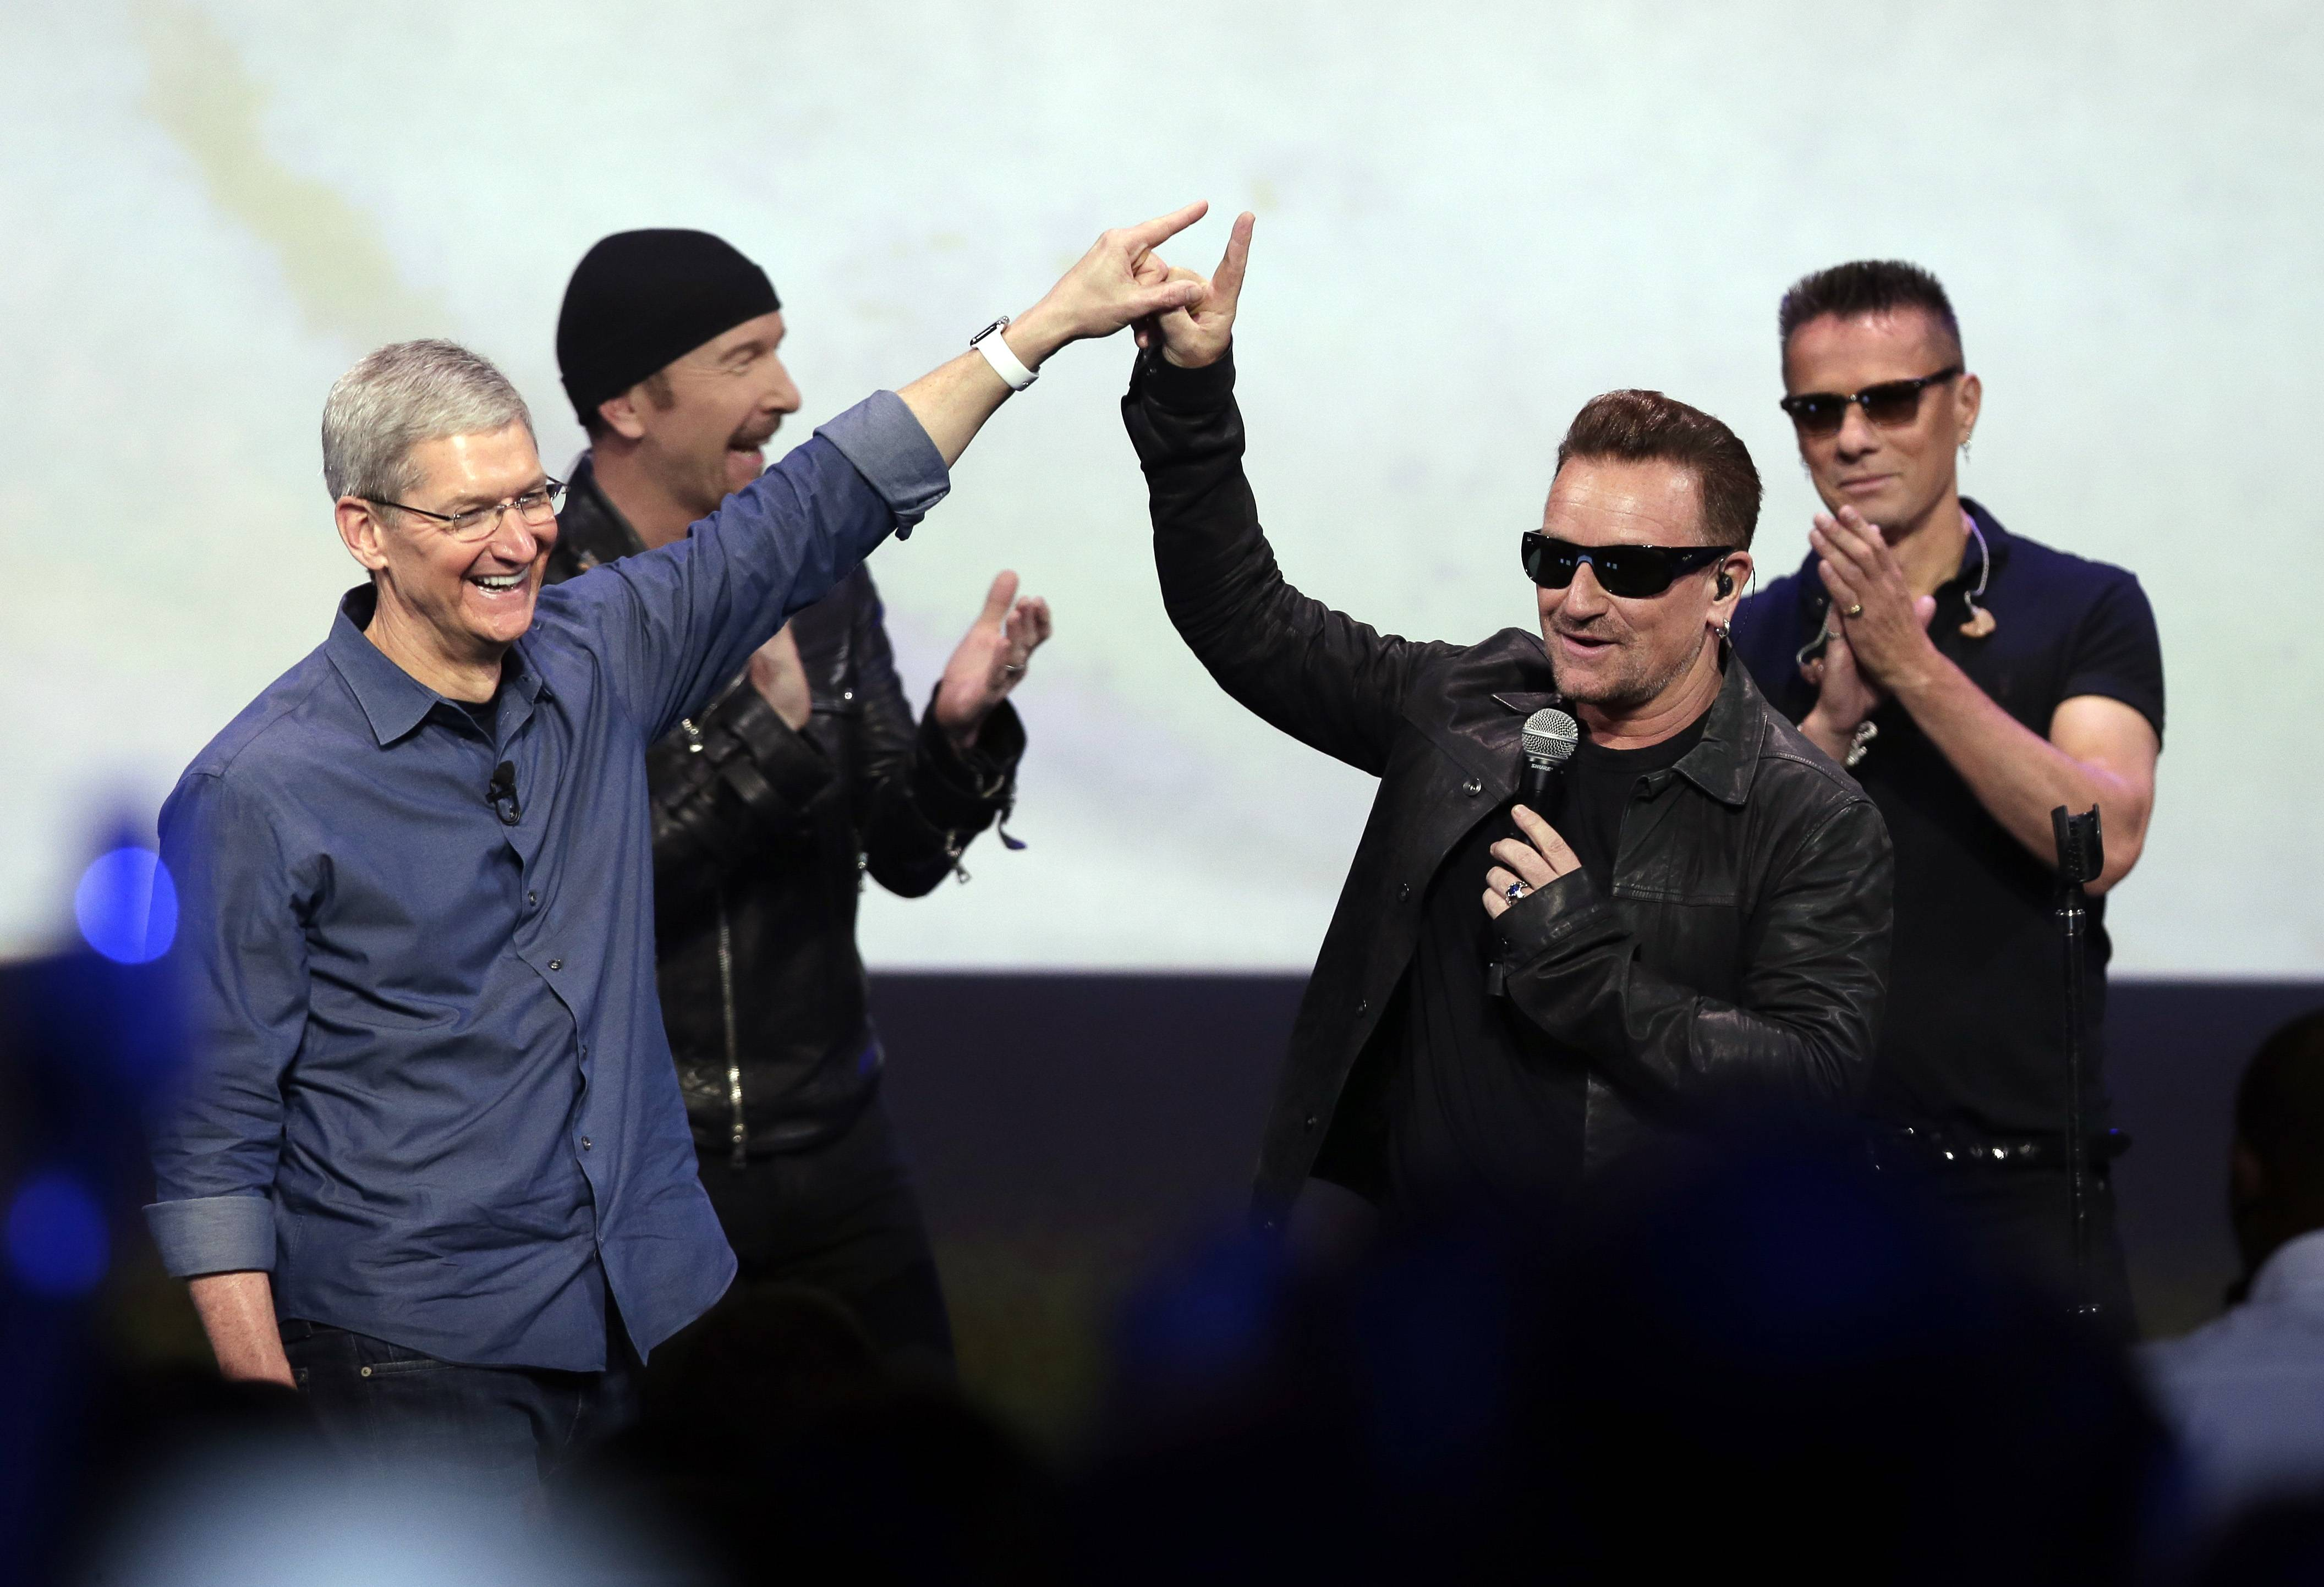 Apple CEO Tim Cook, left, greets Bono from the band U2 after they performed at the end of the Apple iPhone 6 announcement event on Tuesday, Sept. 9, in Cupertino, Calif.